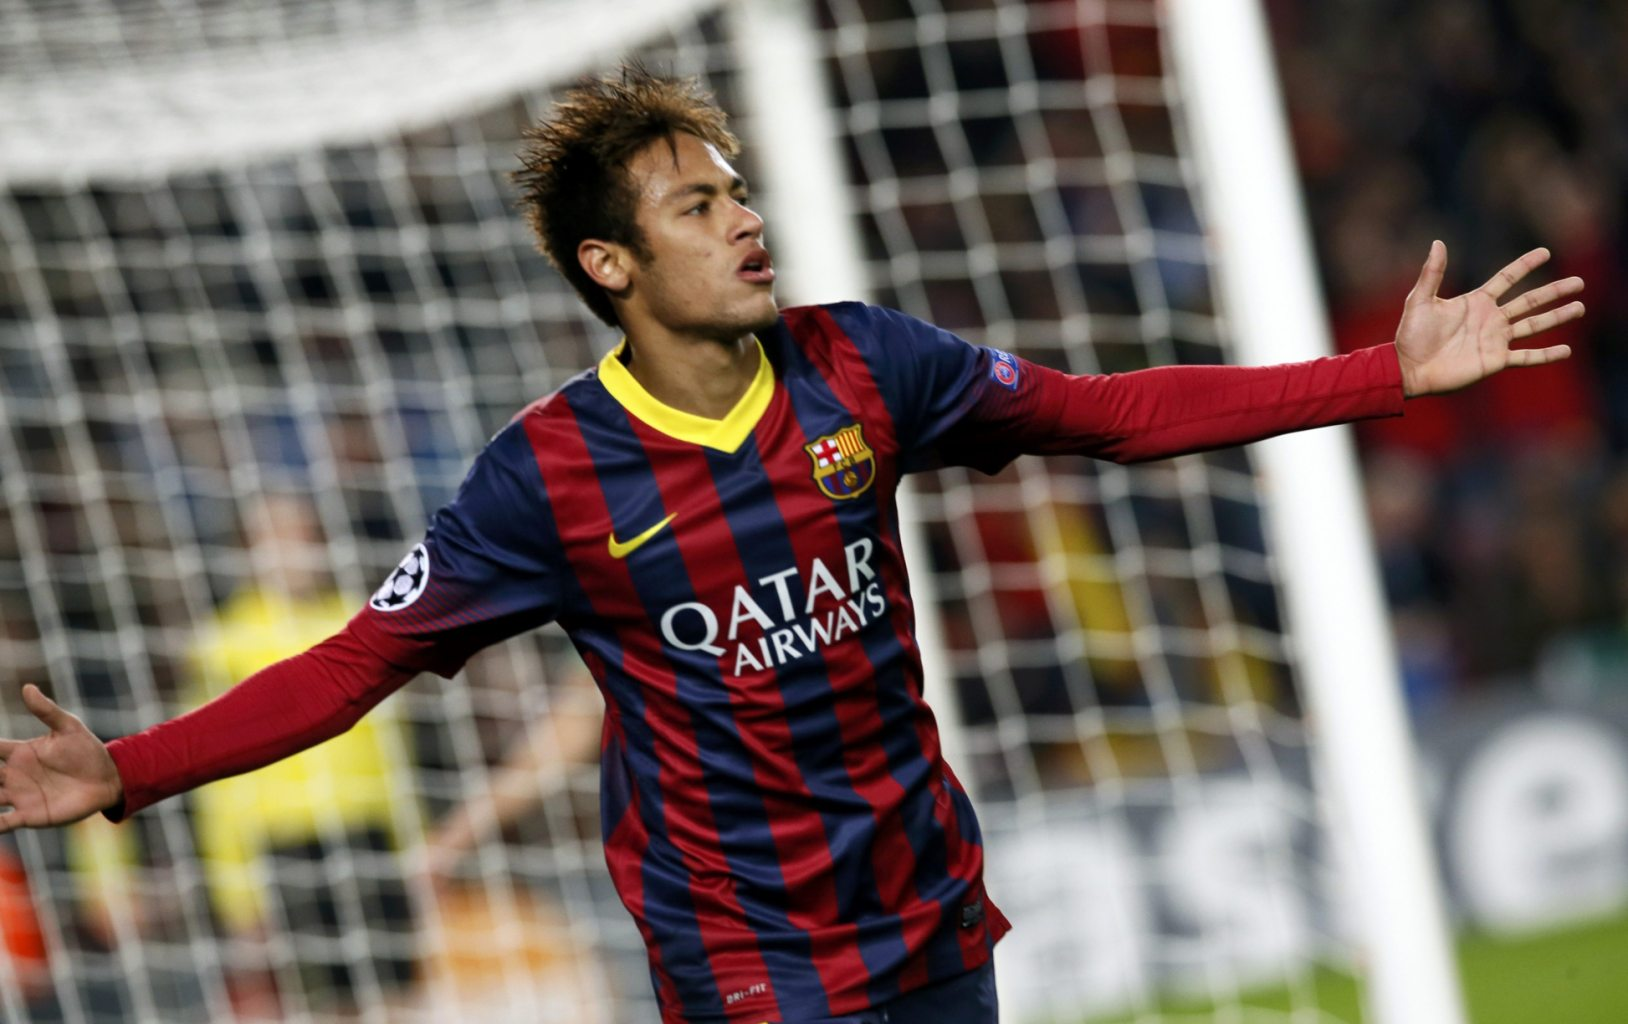 Neymar open arms goal celebration